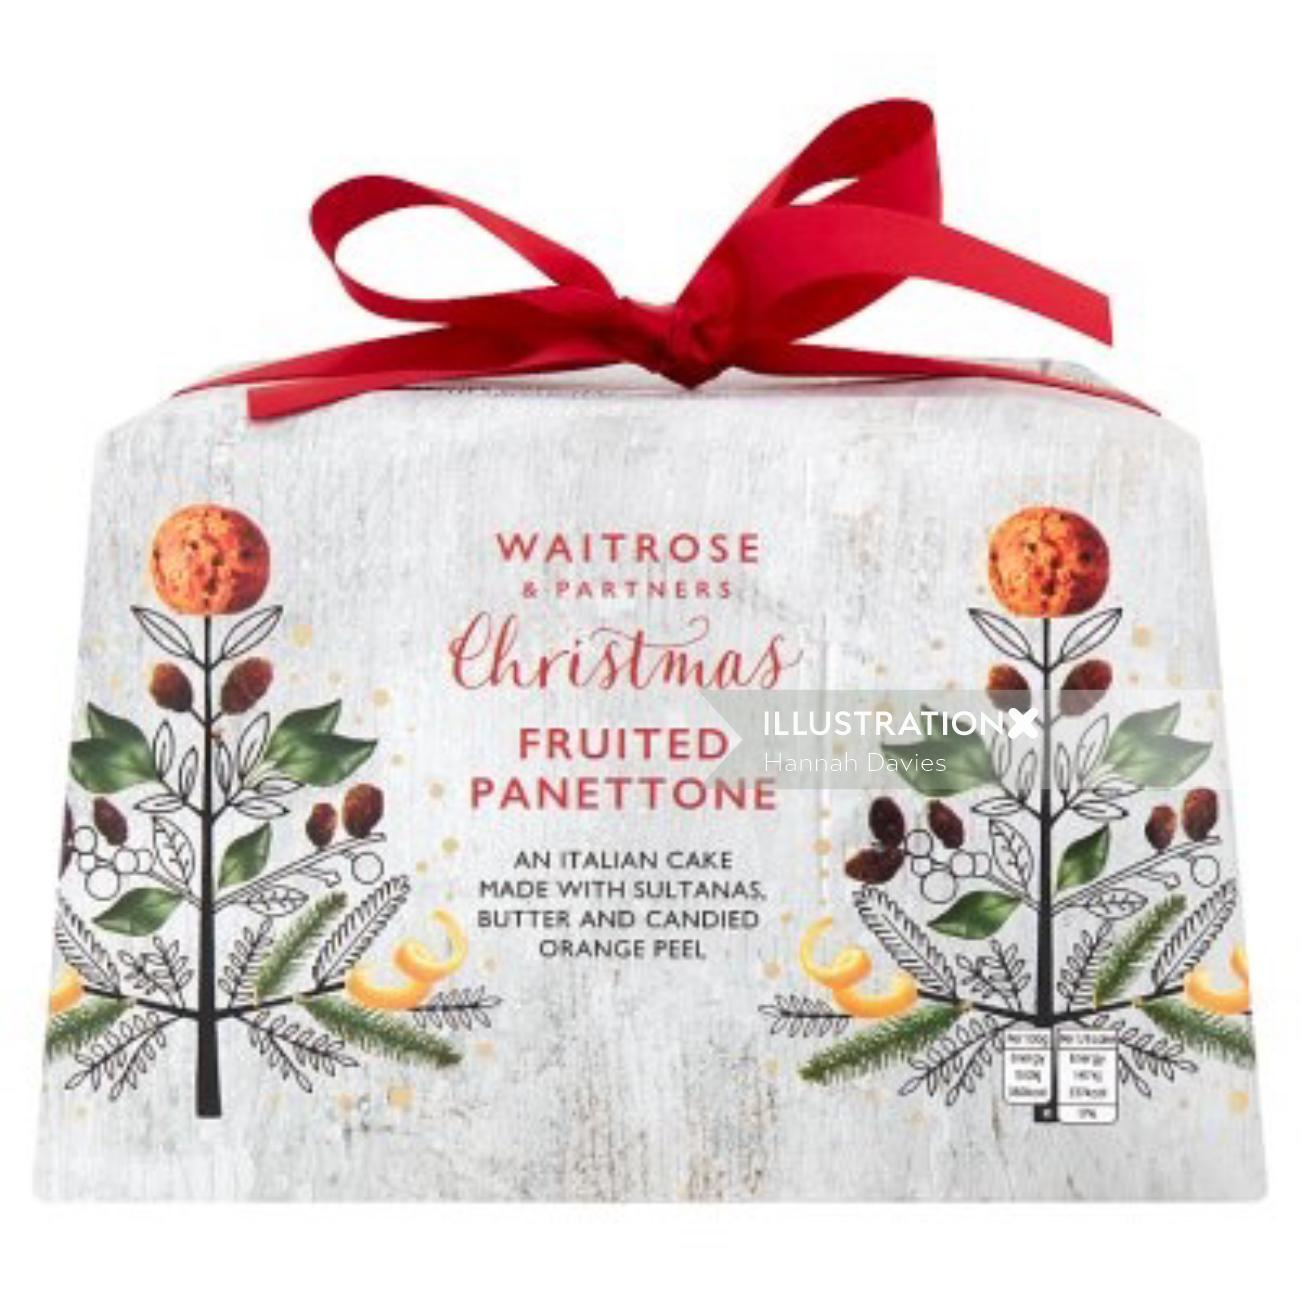 Product waitrose christmas